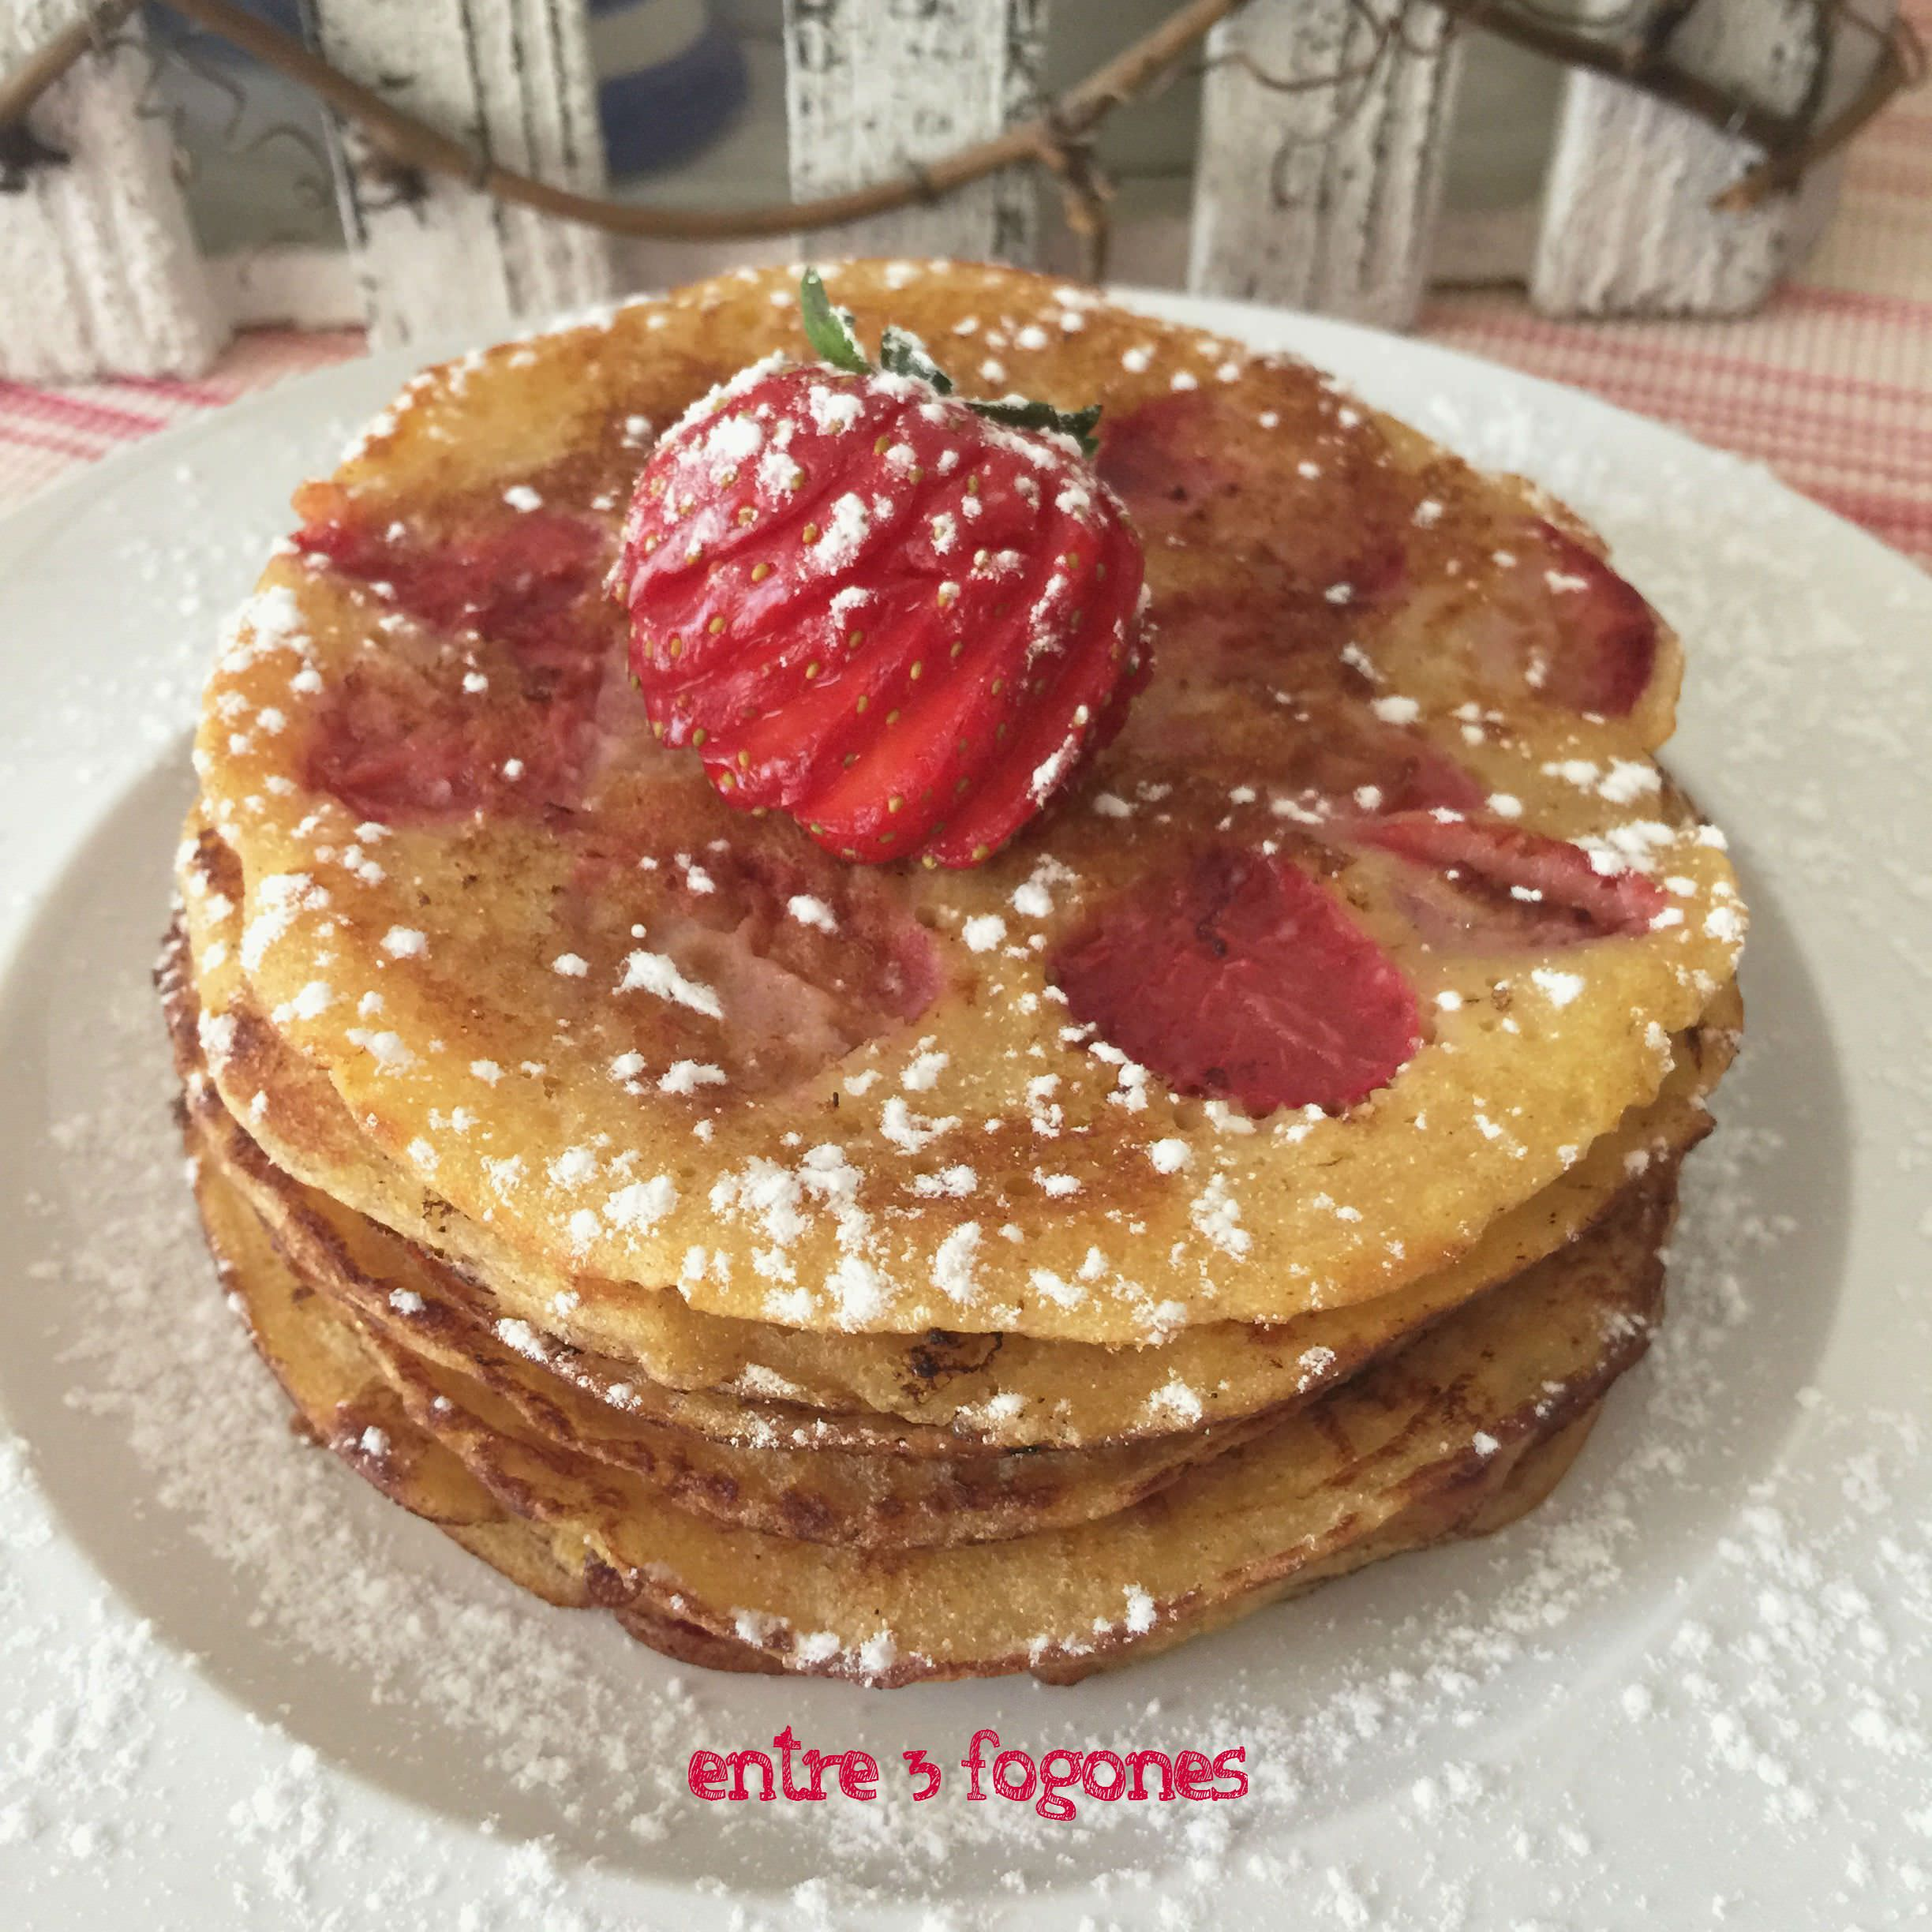 Photo of Juego de Blogueros 2.0: Crêpes o Crepes de Fresas